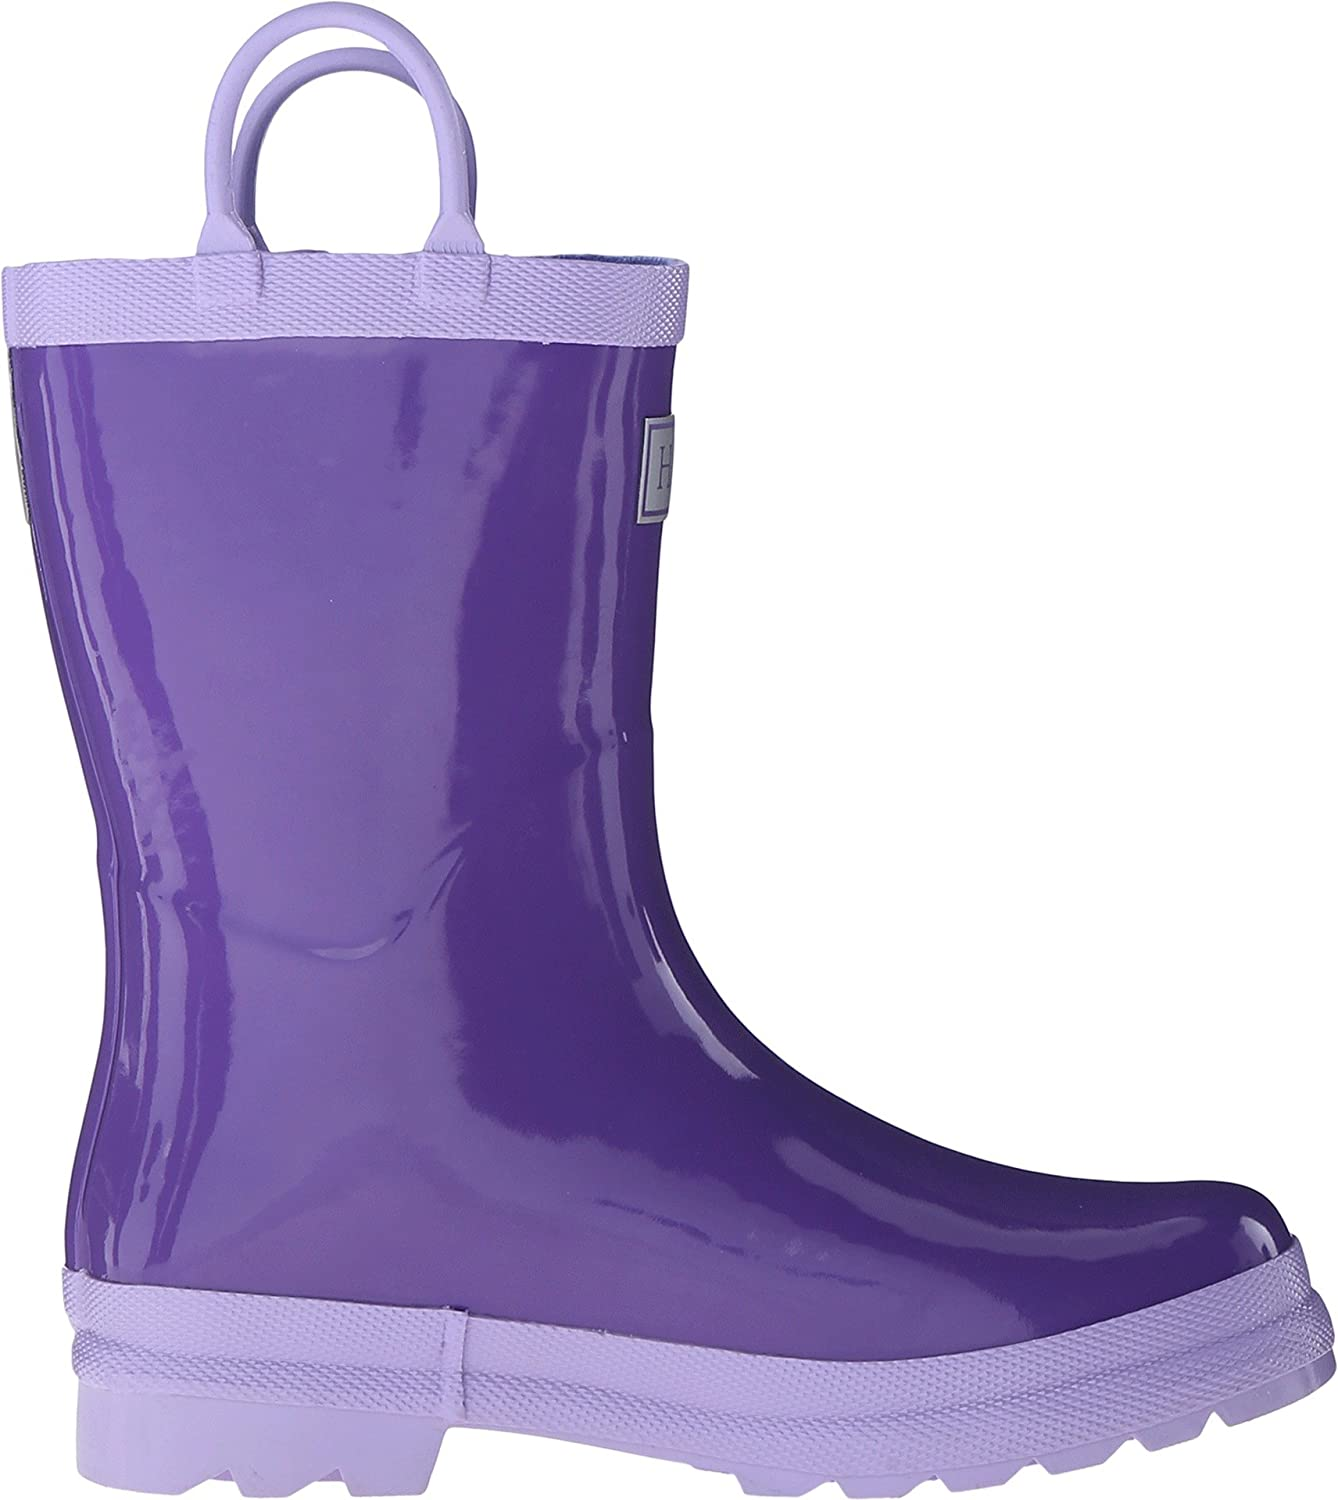 Hatley Kids Womens Purple /& Lilac Rainboots Toddler//Little Kid